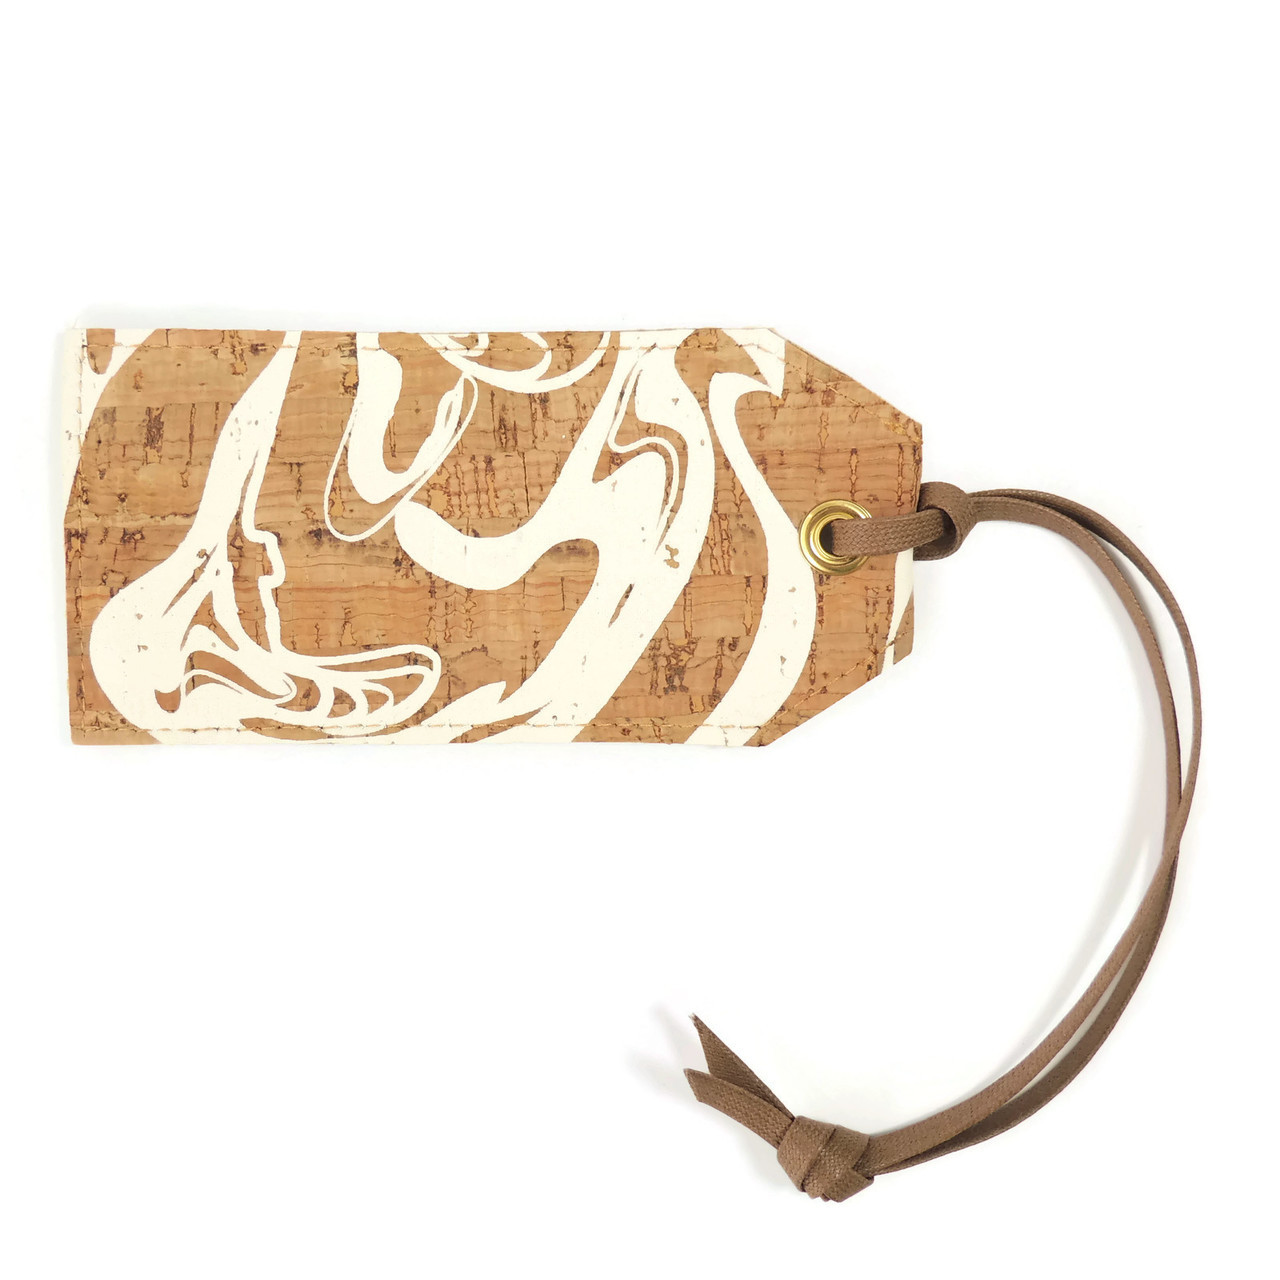 Luggage Tag in White Ink CorkLuggage Tag in White Ink Cork